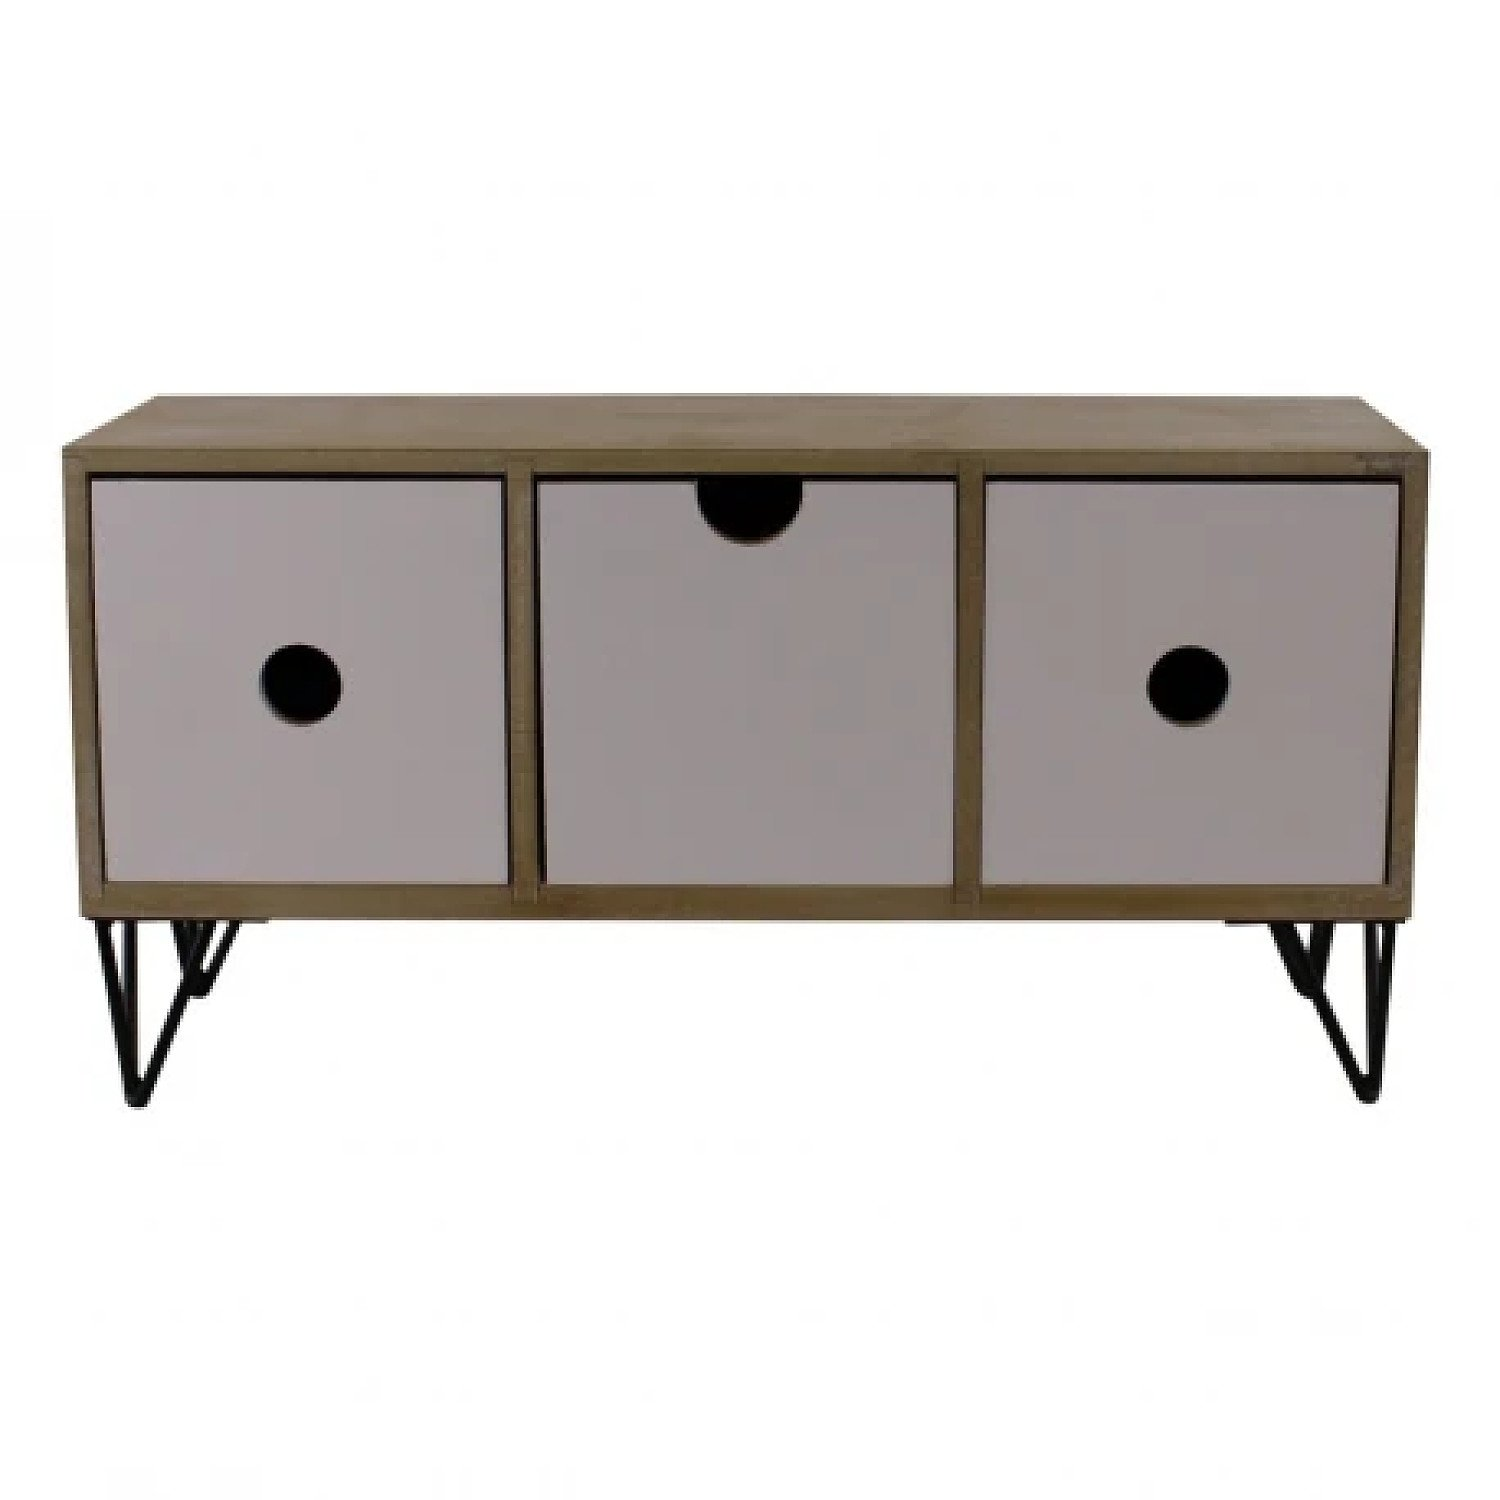 3 Drawer Trinket Unit with Wire Legs, Horizontal Style Free Postage